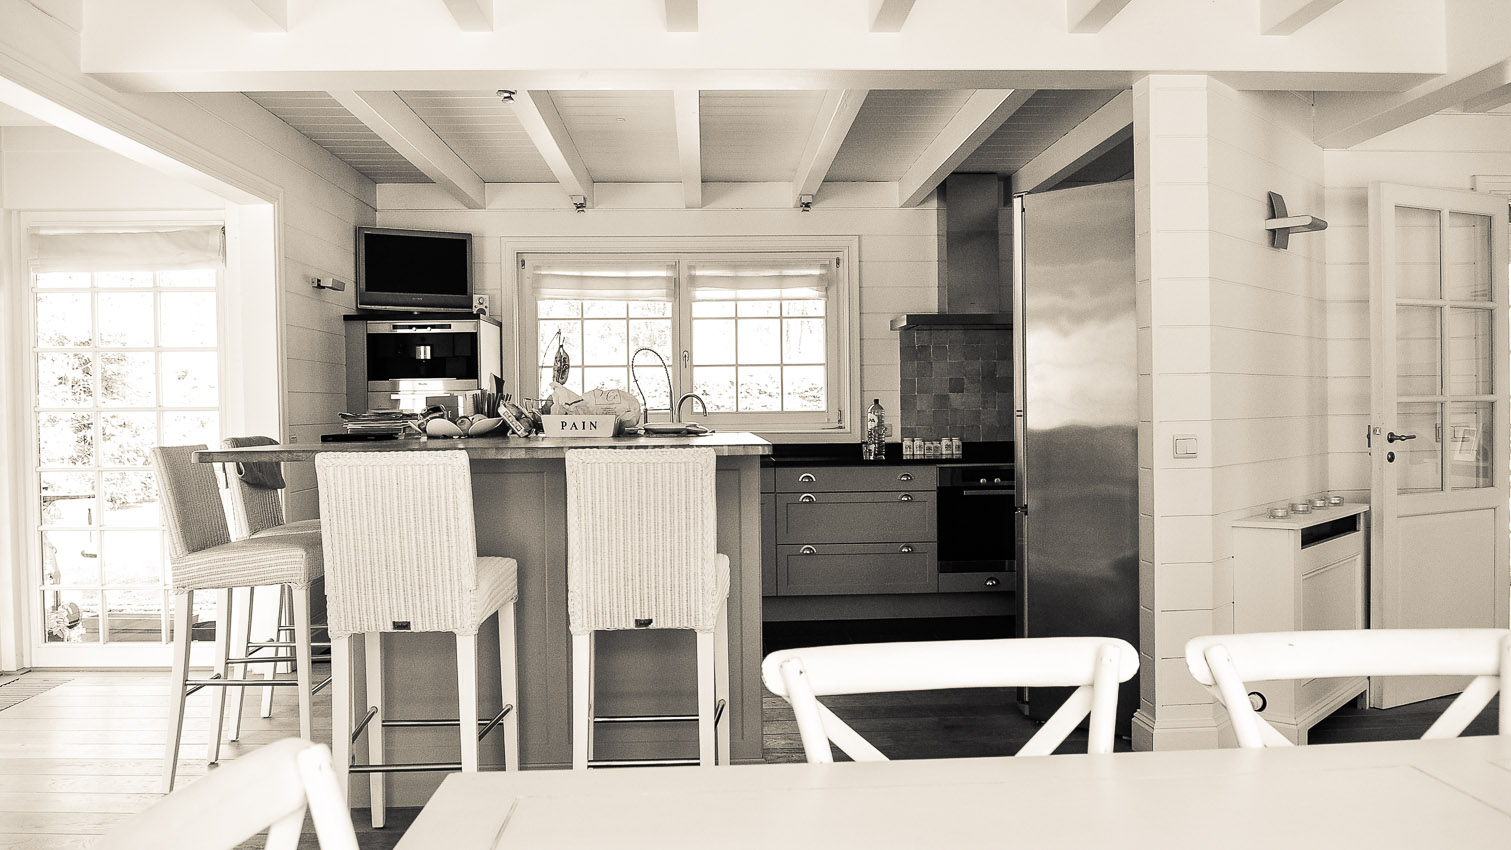 28s-cuisine-kitchen-location-vente-decors-film-cinema-photo-belgium-bruxelles